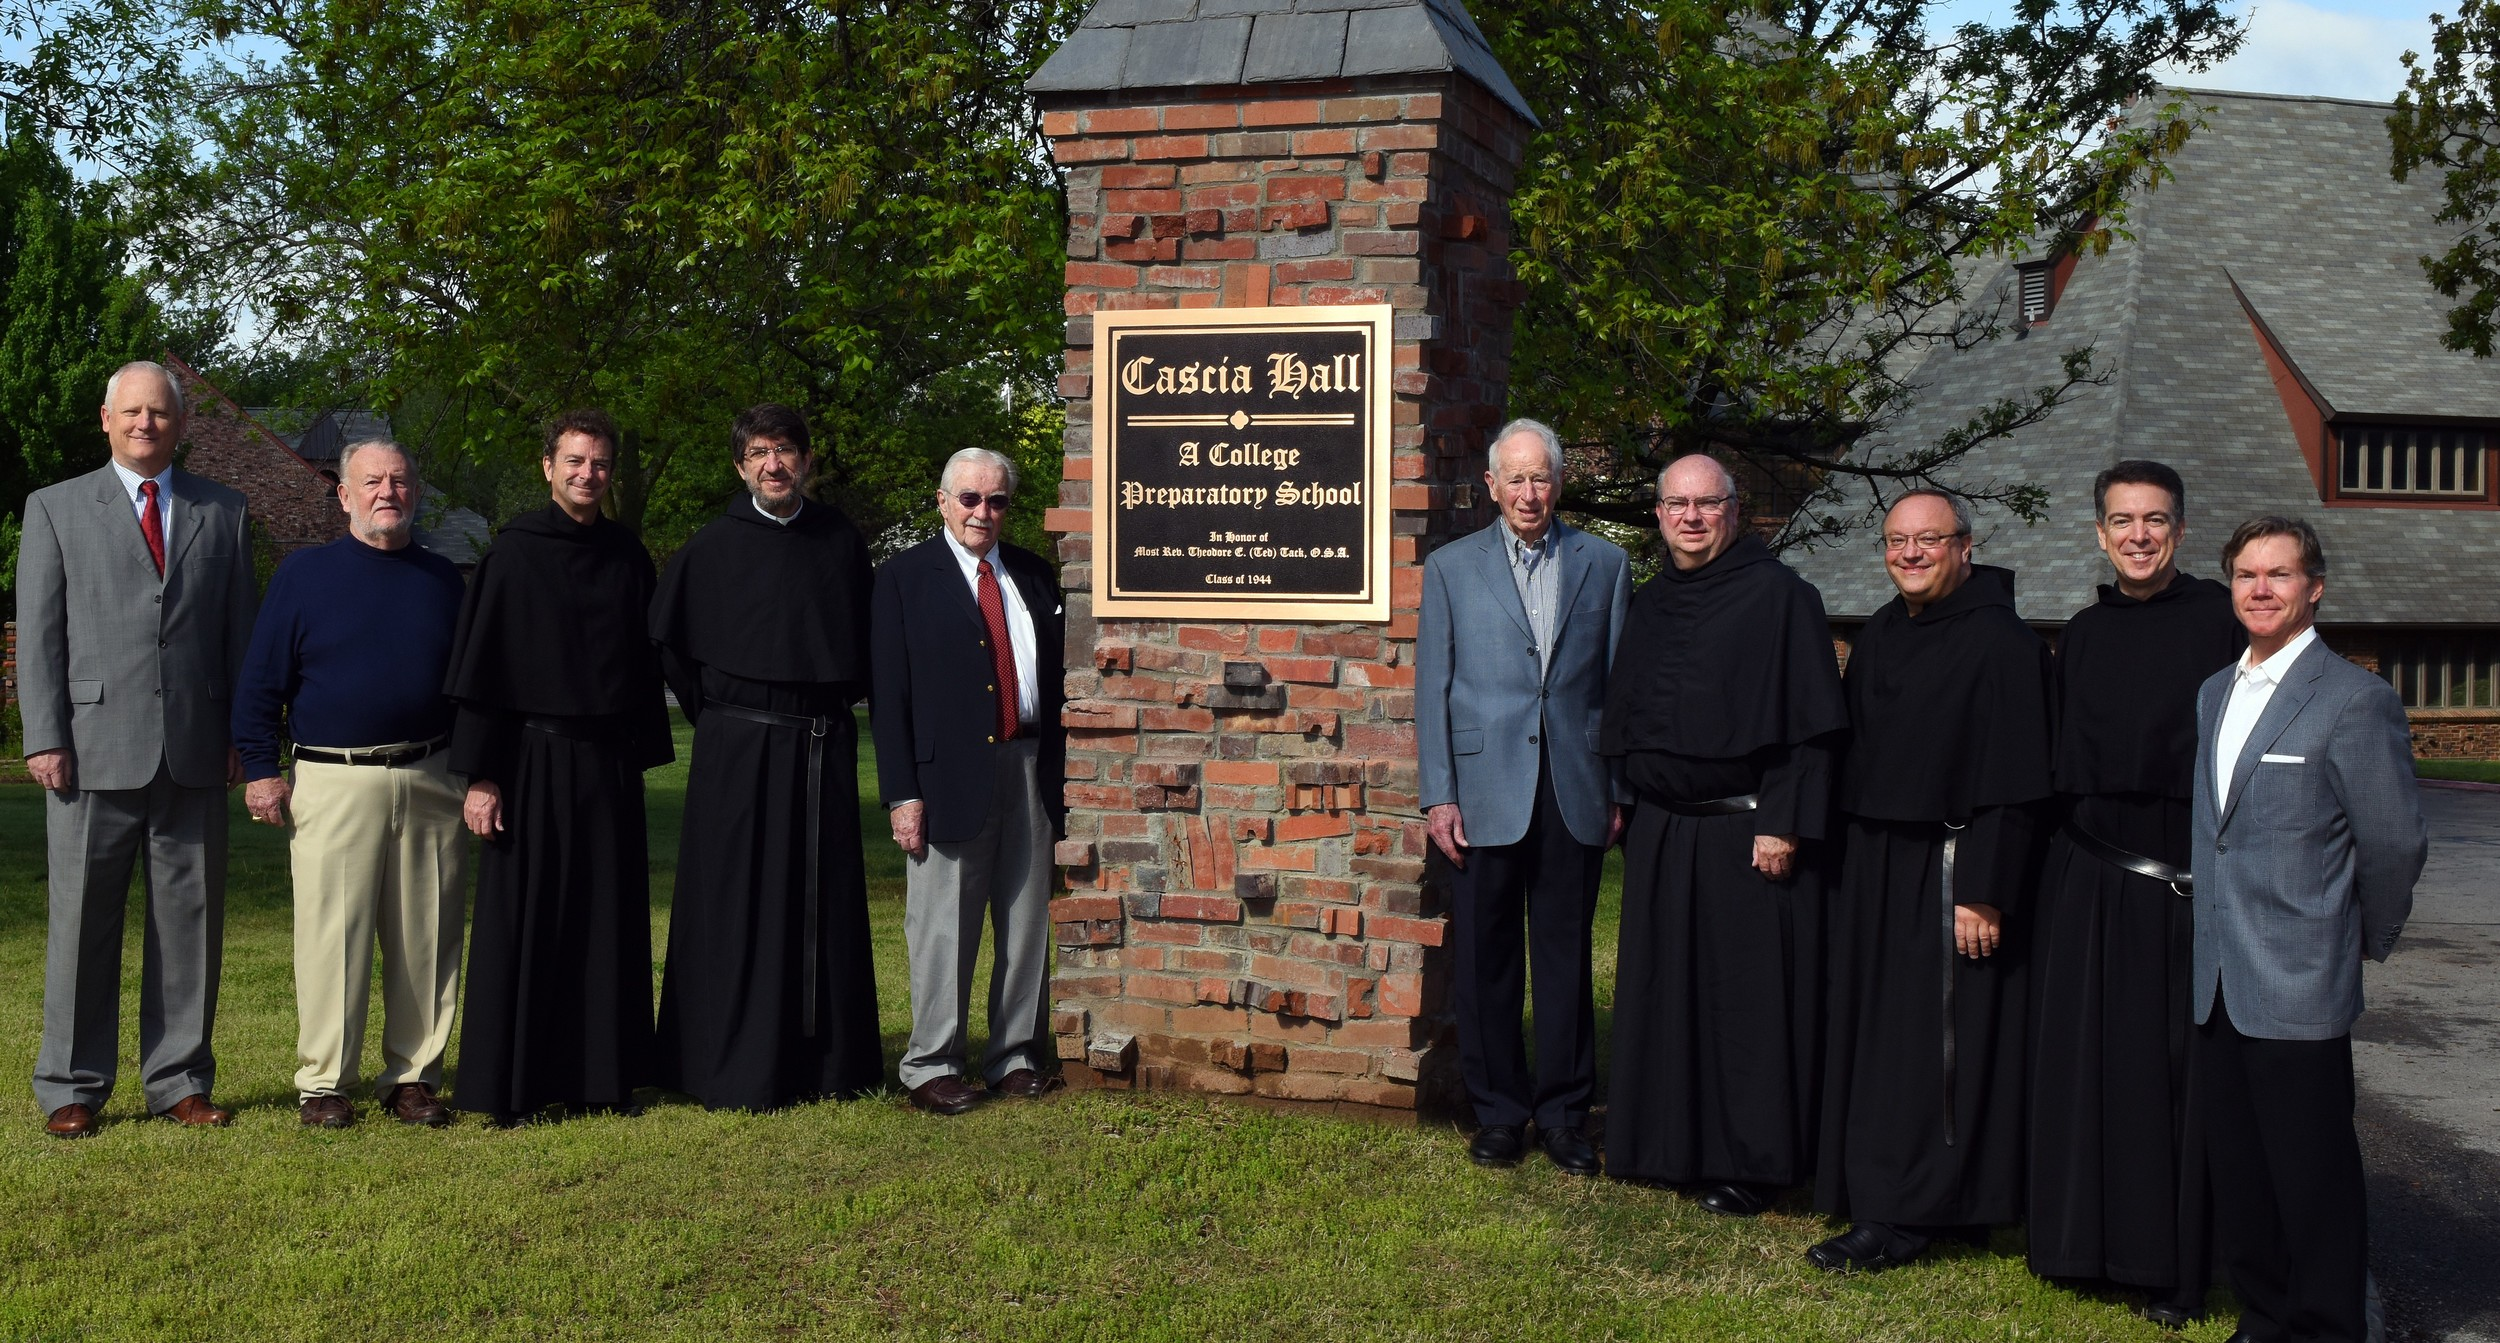 Brother Jack Hibbard, O.S.A. (fourth from right) with the Augustinian Community and Benefactors of Cascia Hall Preparatory School in Tulsa, Oklahoma